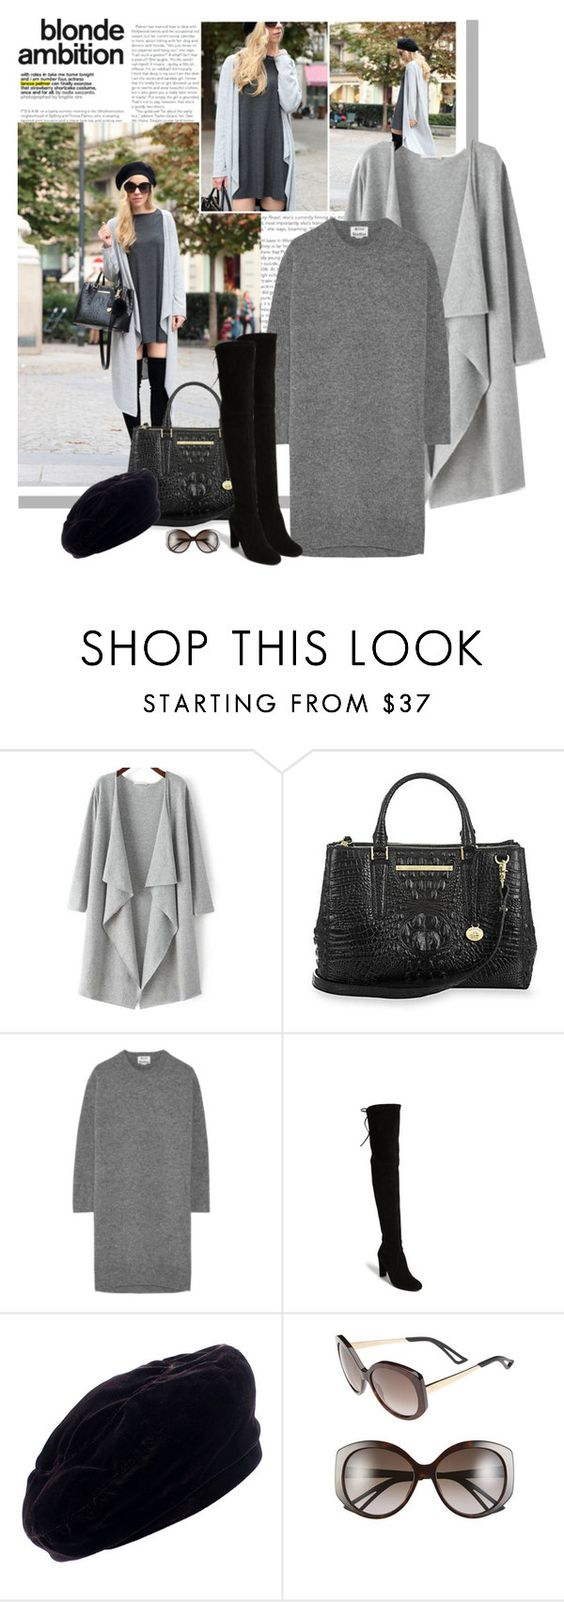 """""""LONG DUSTER CARDIGAN"""" by bodangela ❤ liked on Polyvore featuring Acne Studios, Stuart Weitzman, Yves Saint Laurent and Christian Dior"""